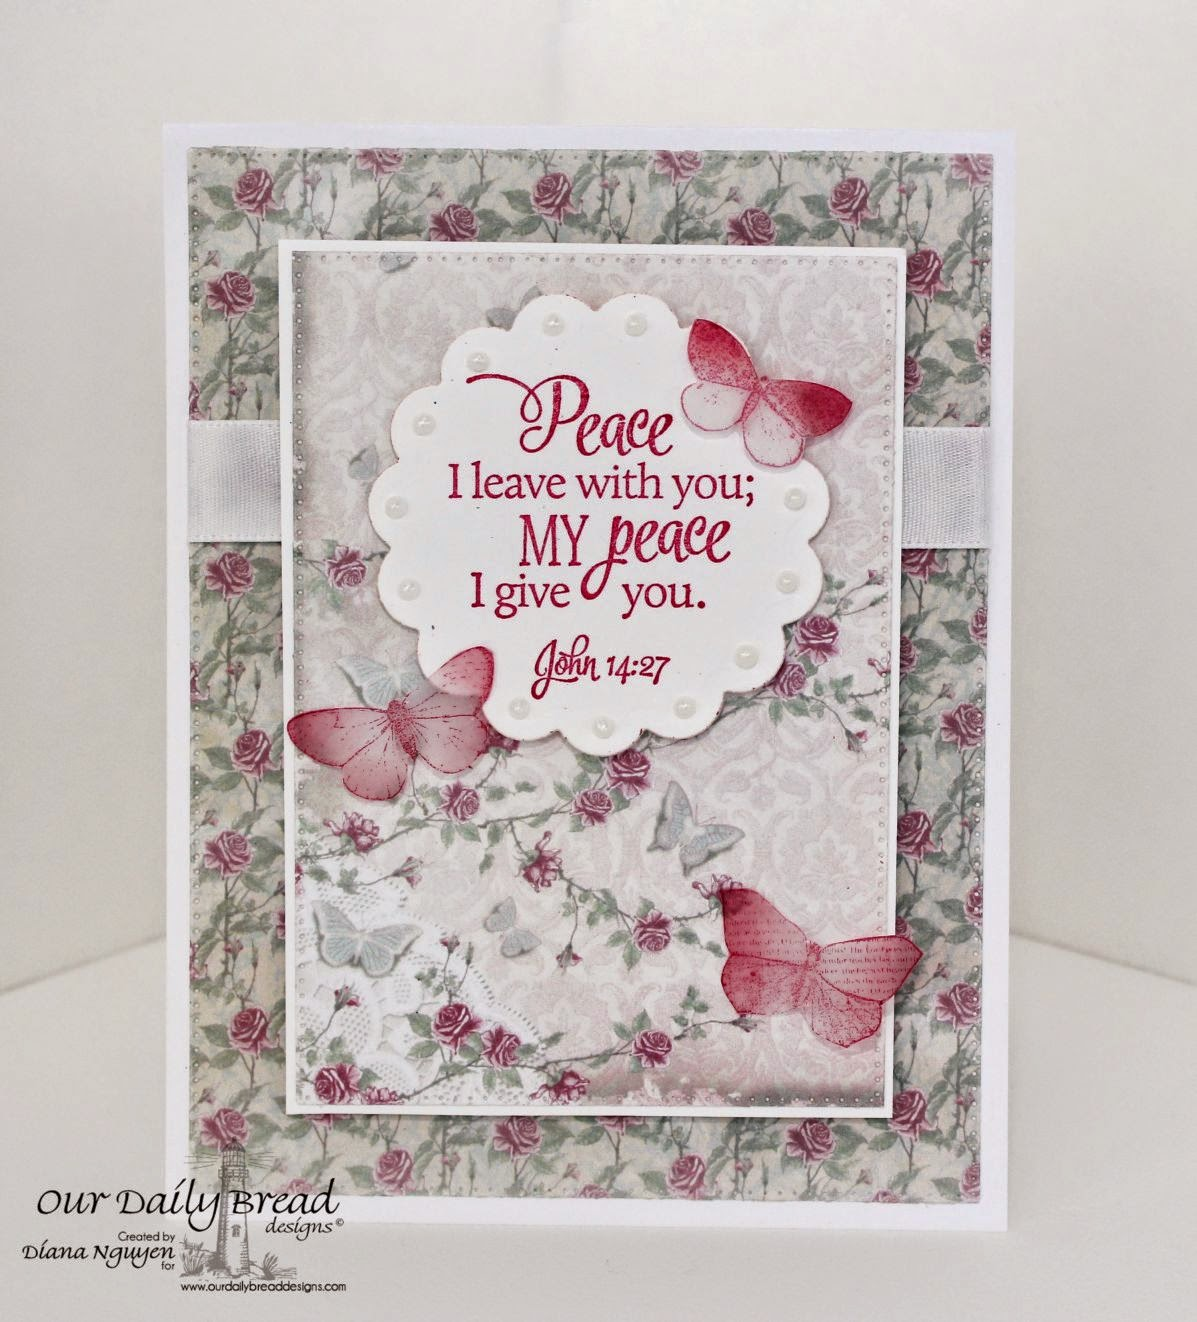 Diana Nguyen, Our Daily Bread Designs, Scripture, Shabby Rose